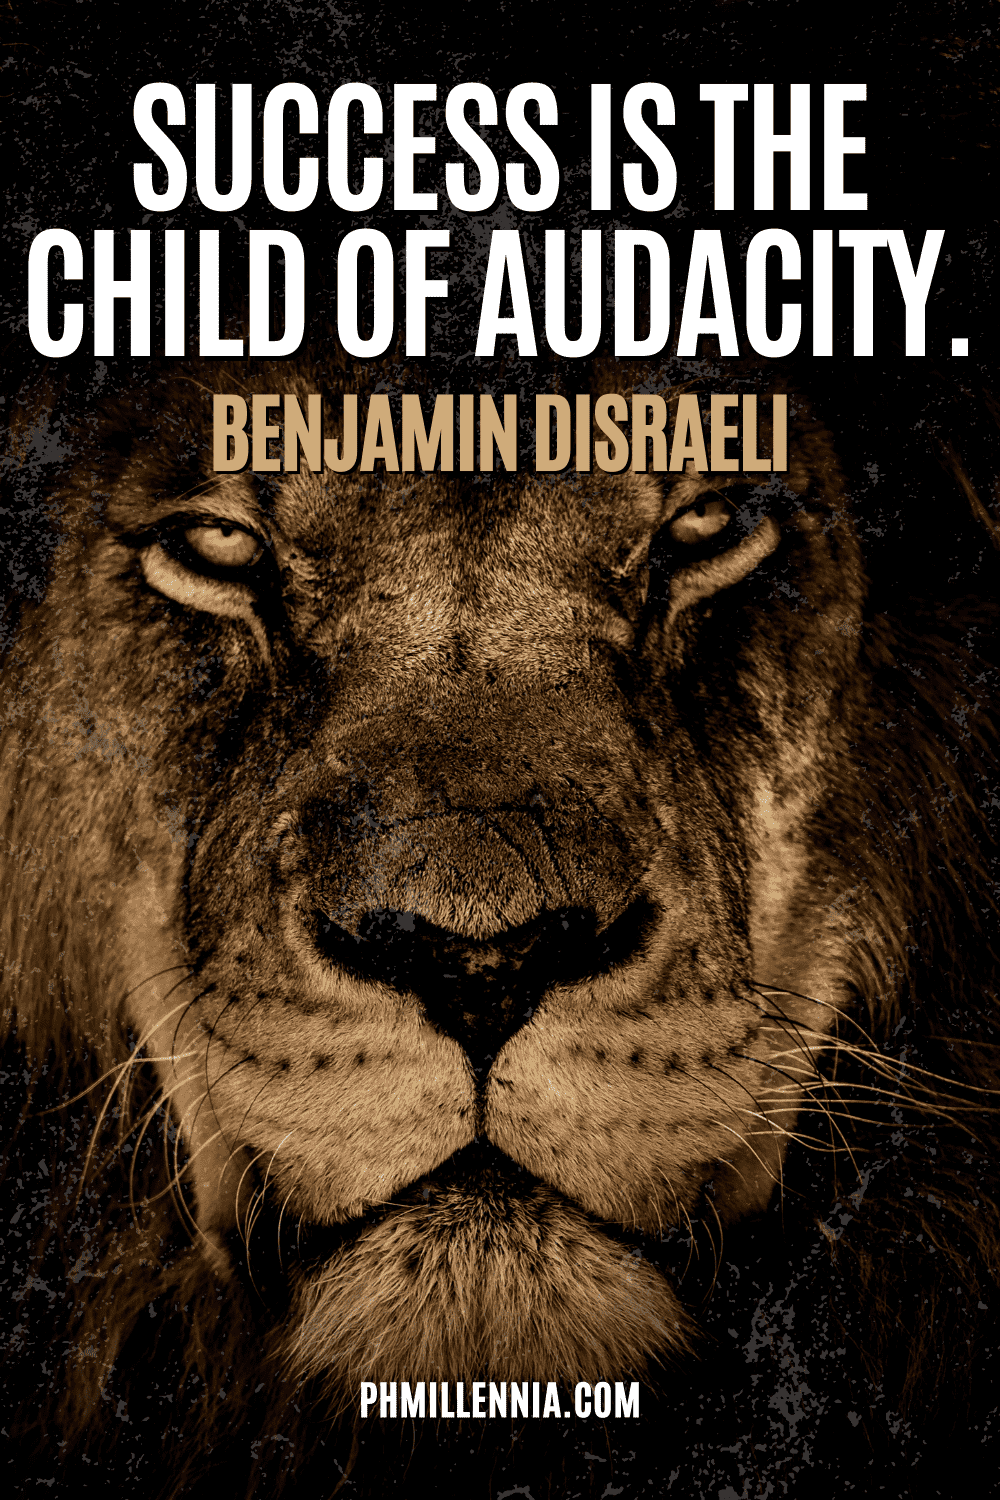 A graphic containing text on an image of a lion